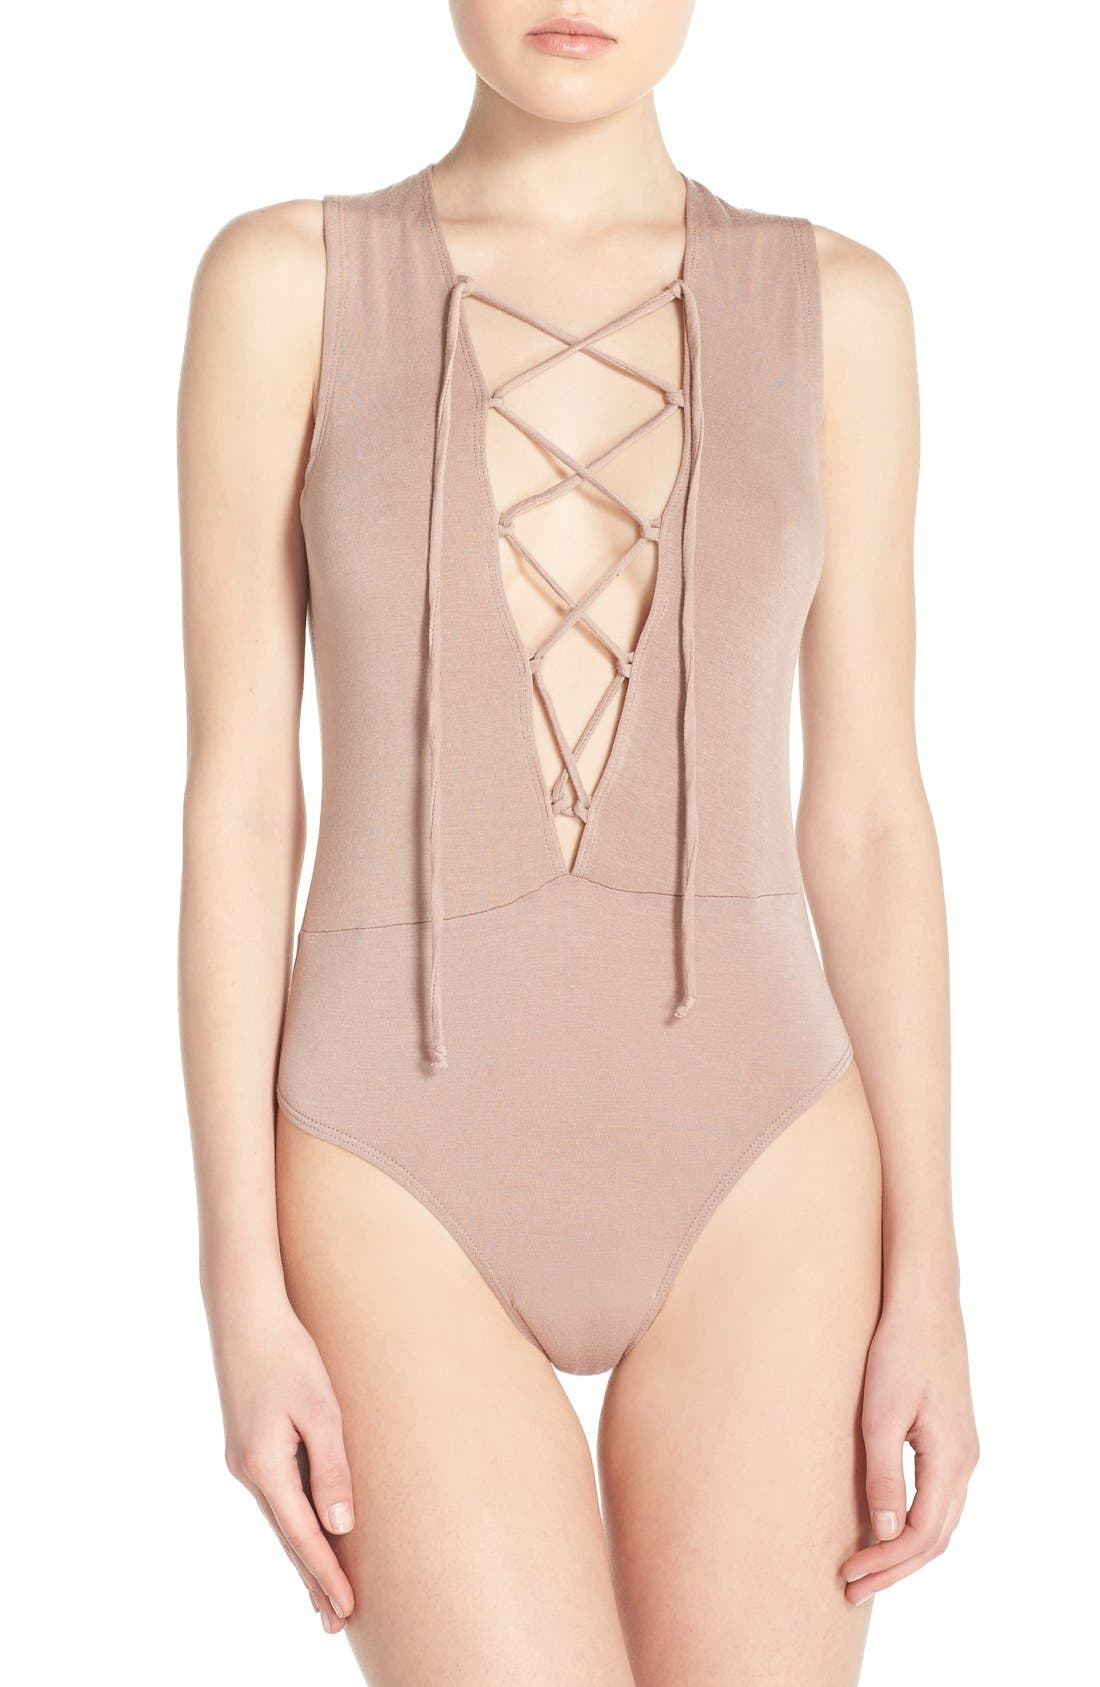 OLYMPIA THEODORA Stretch Modal Lace-Up Thong Bodysuit